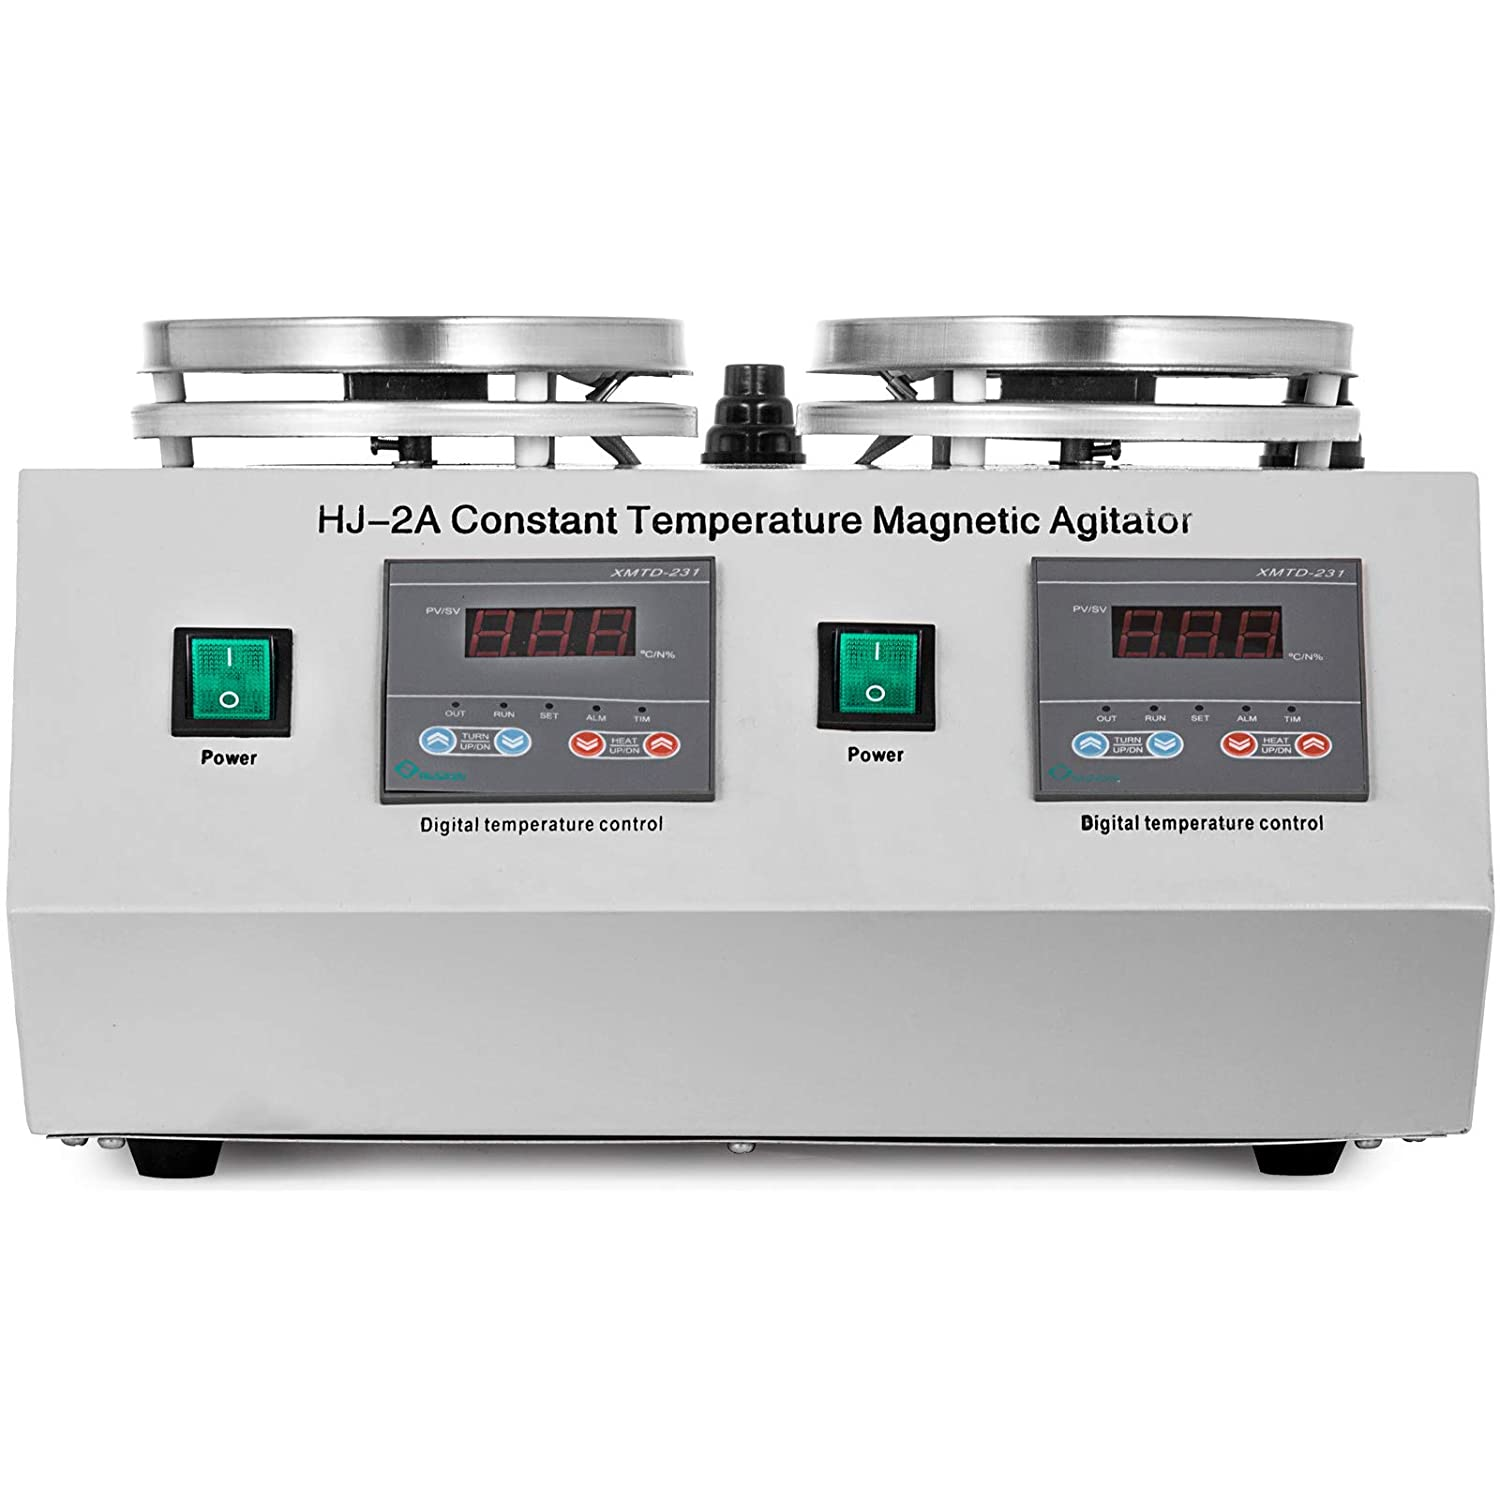 MosaicAL 2 Heads Magnetic Stirrer HJ-2A Stir Bar Thermostatic Dual Control Constant Magnetic Agitator Hotplate for Lab HJ-2A